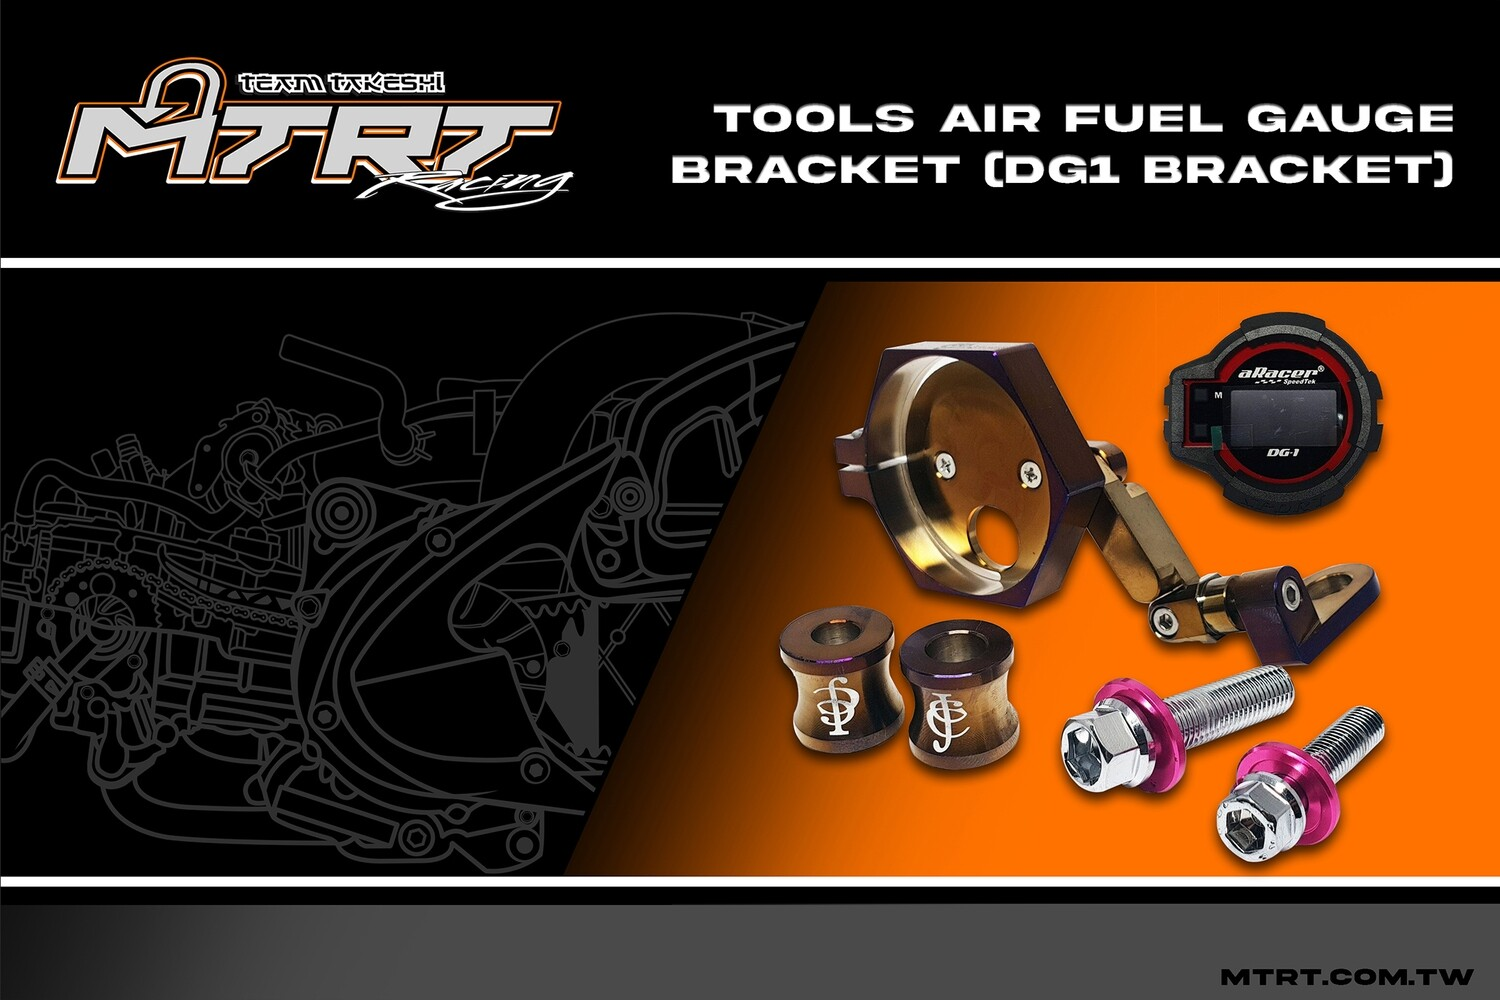 TOOLS AIR FUEL GAUGE BRACKET